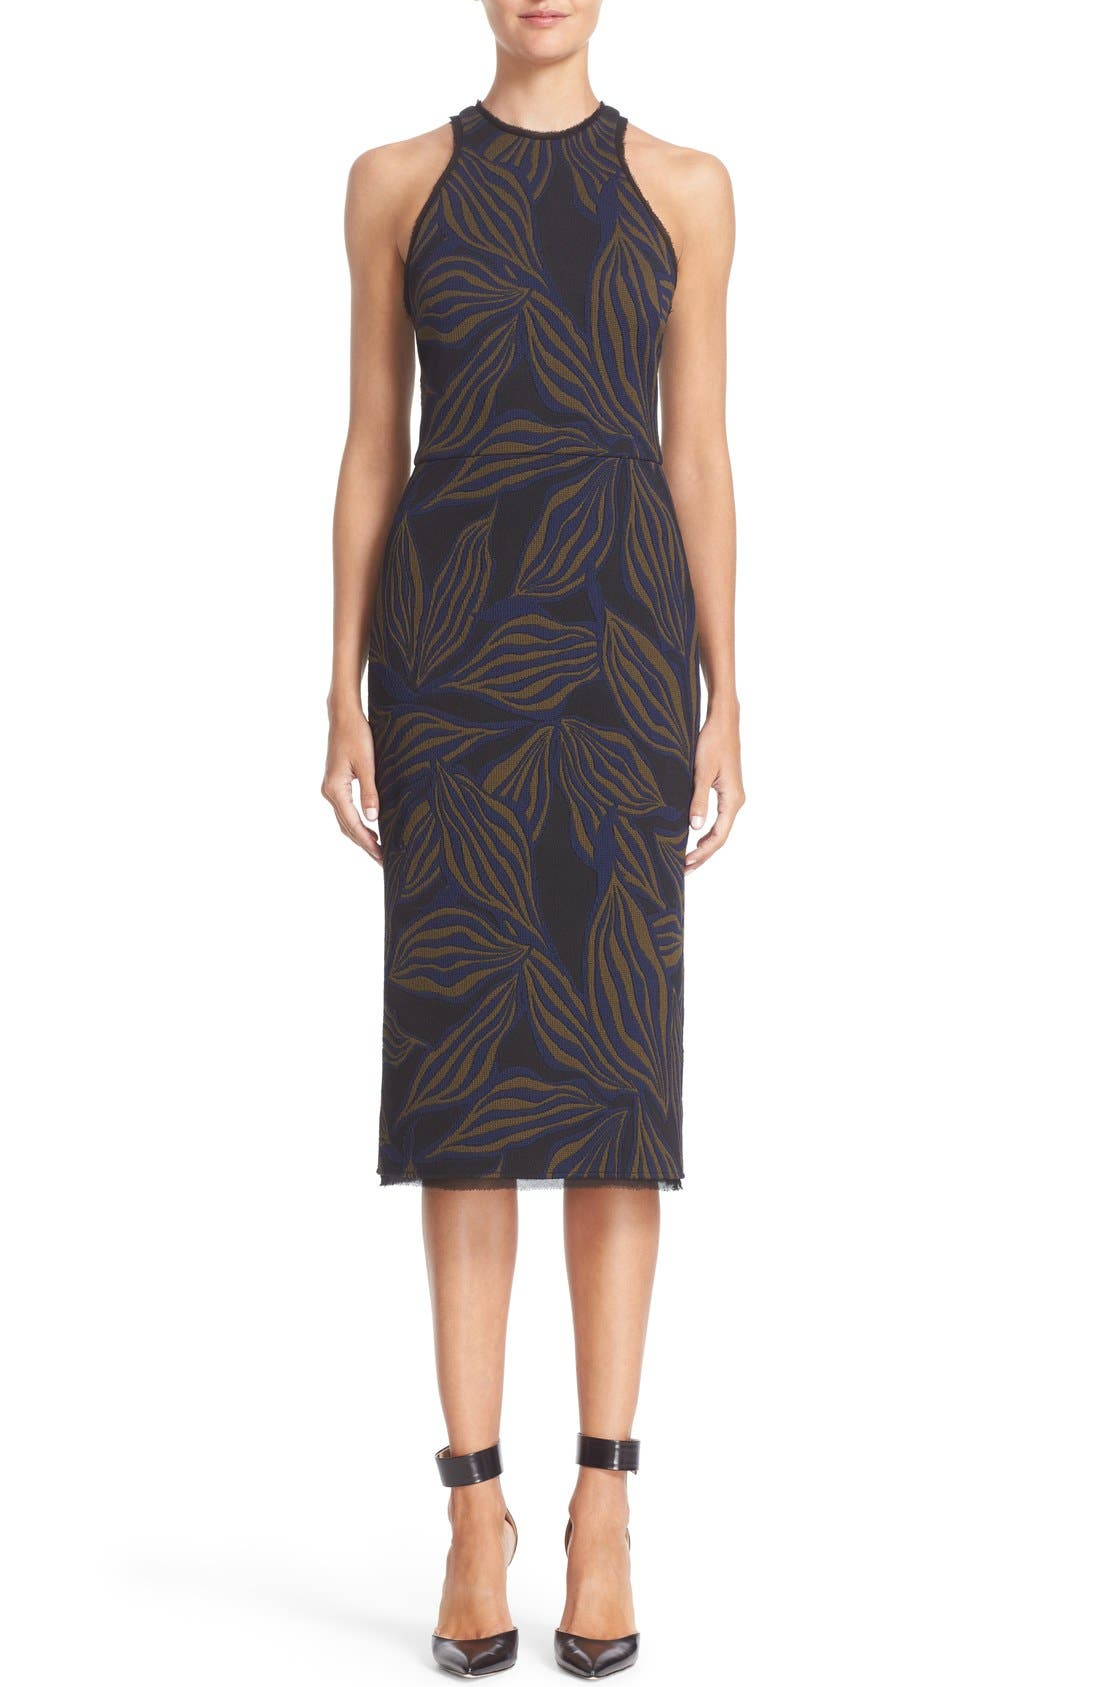 JASON WU Floral Jacquard Sheath Dress